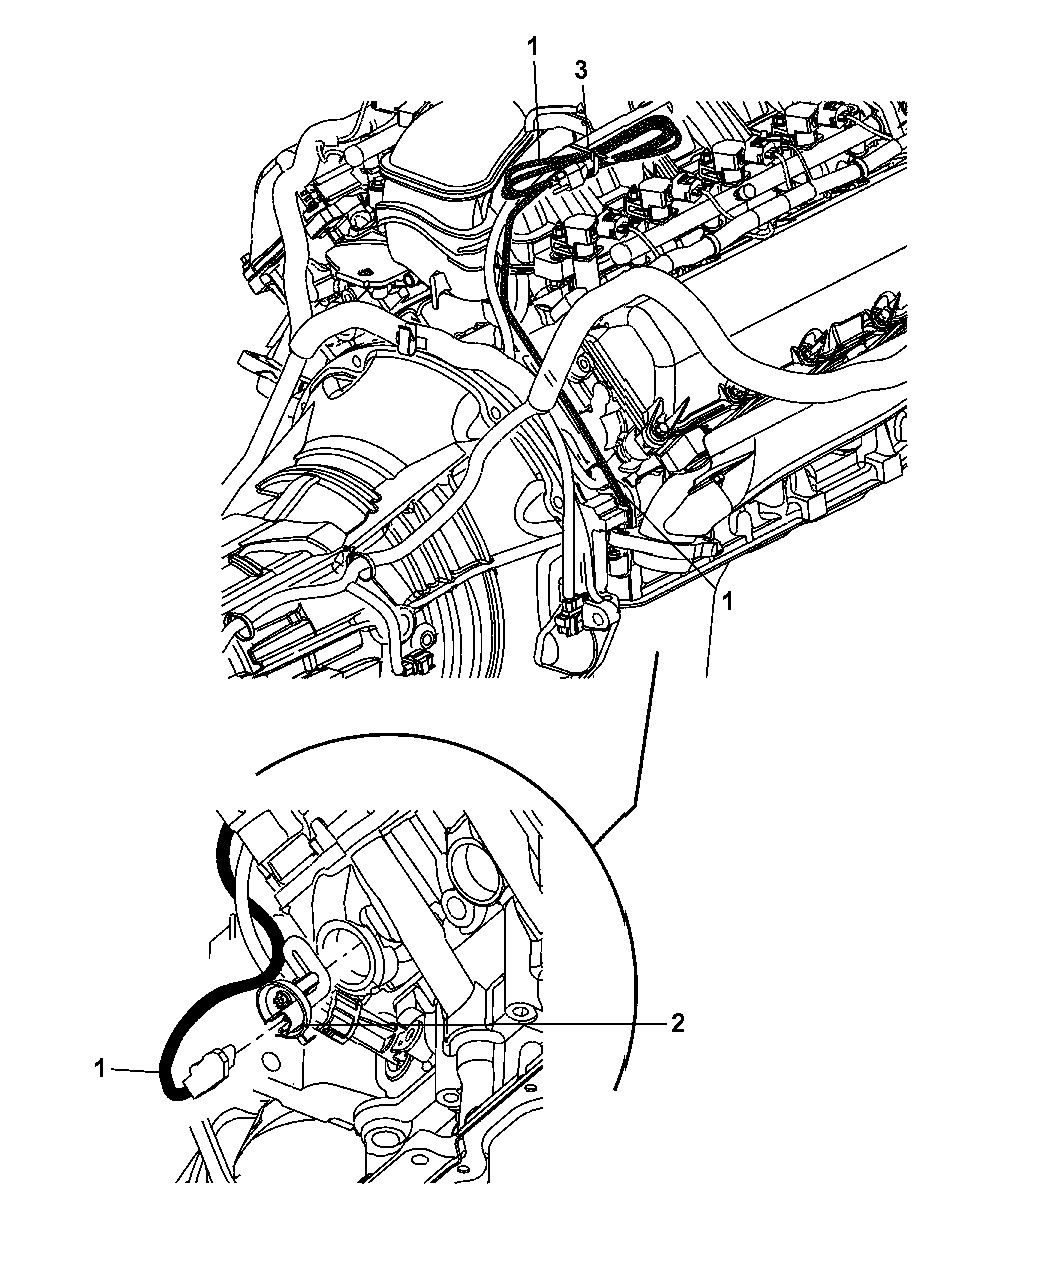 4801646aa - genuine jeep wiring-engine block heater 2004 jeep grand cherokee engine diagram water pump